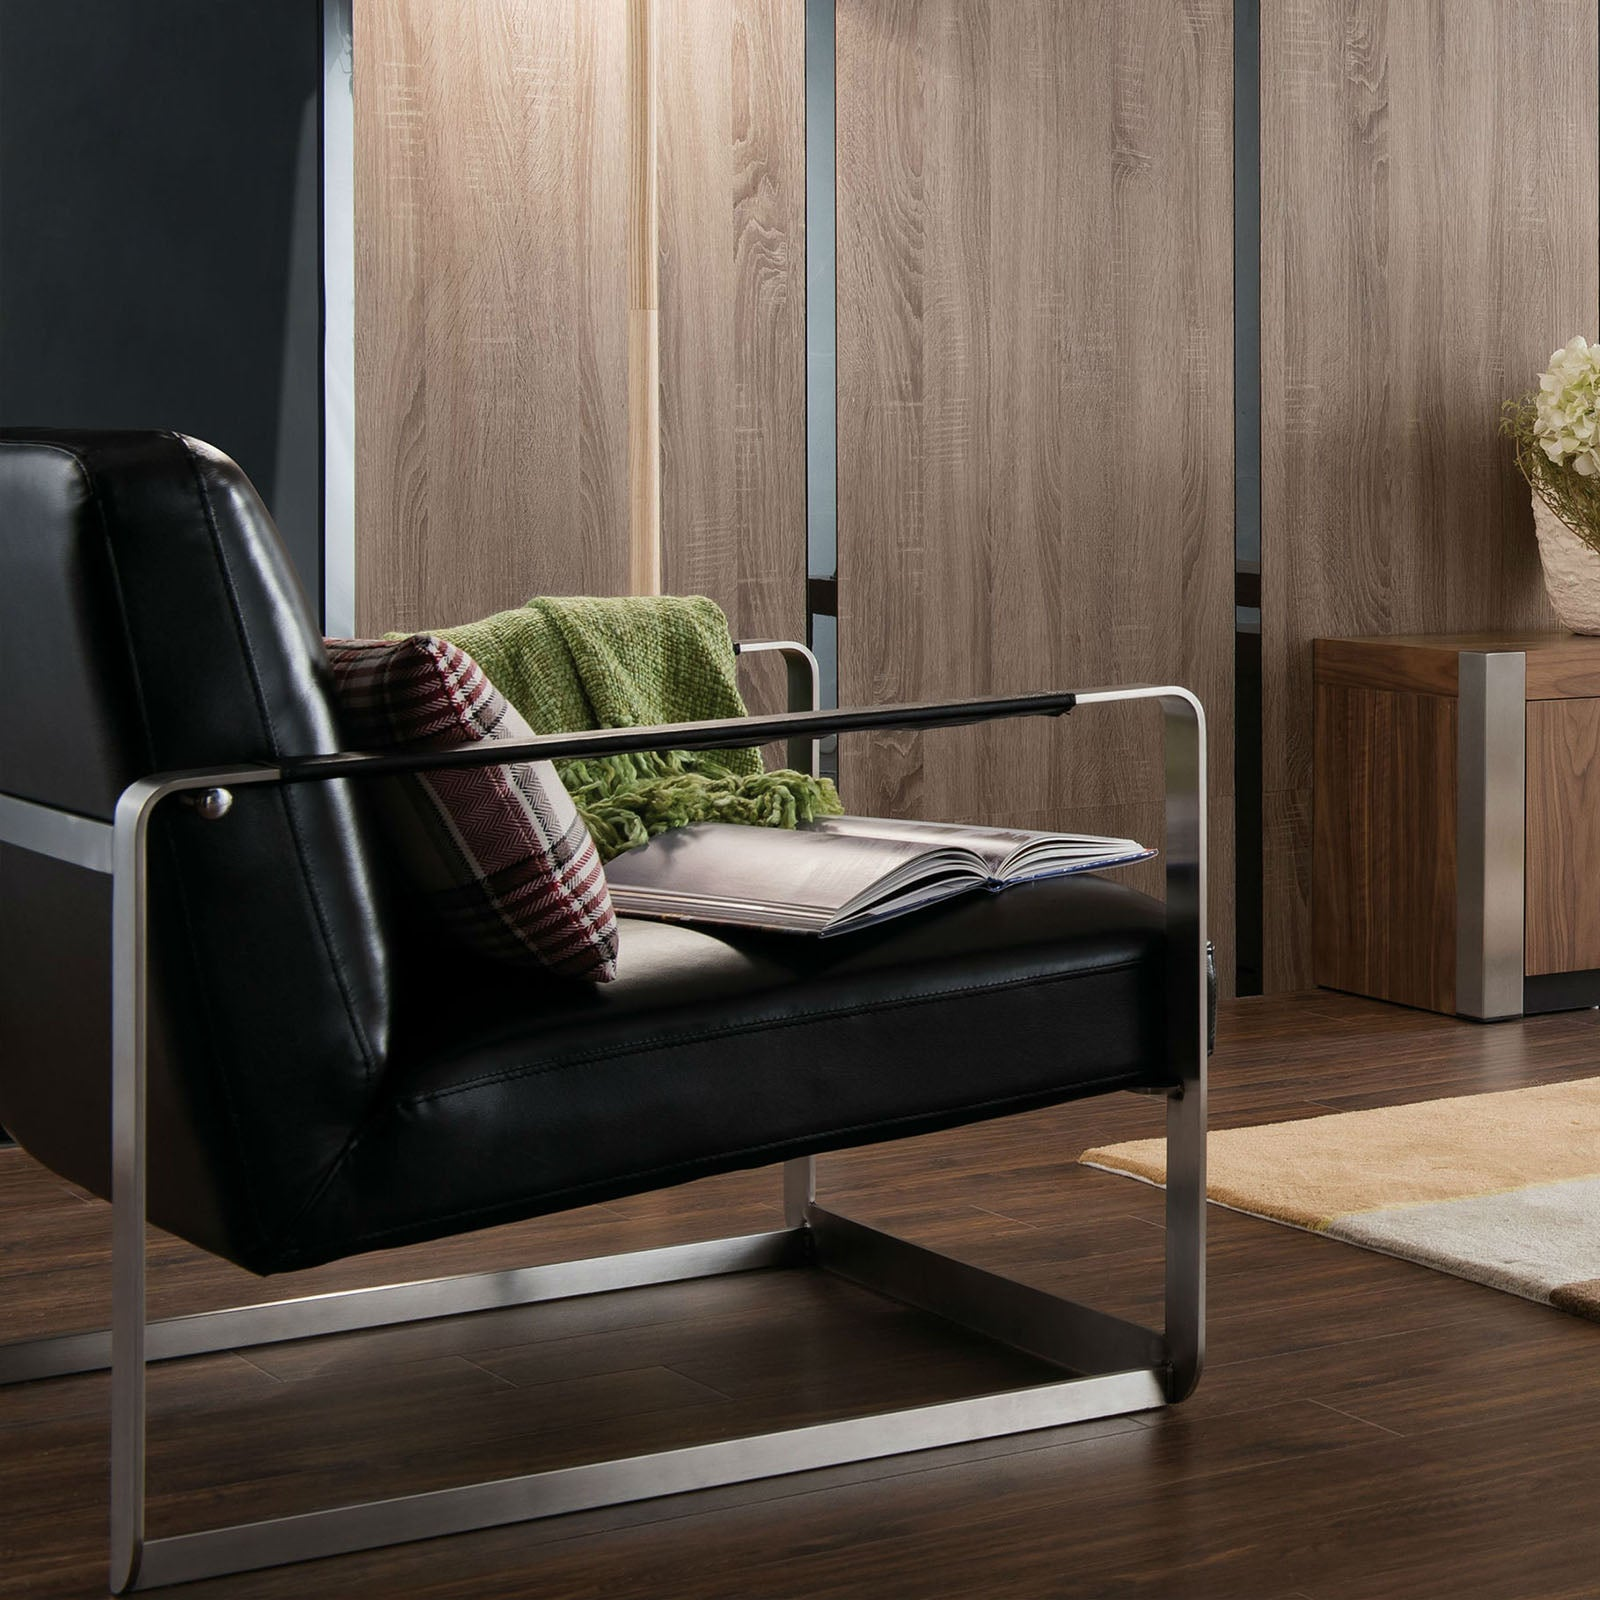 Lille Lounge Chair B2089-C